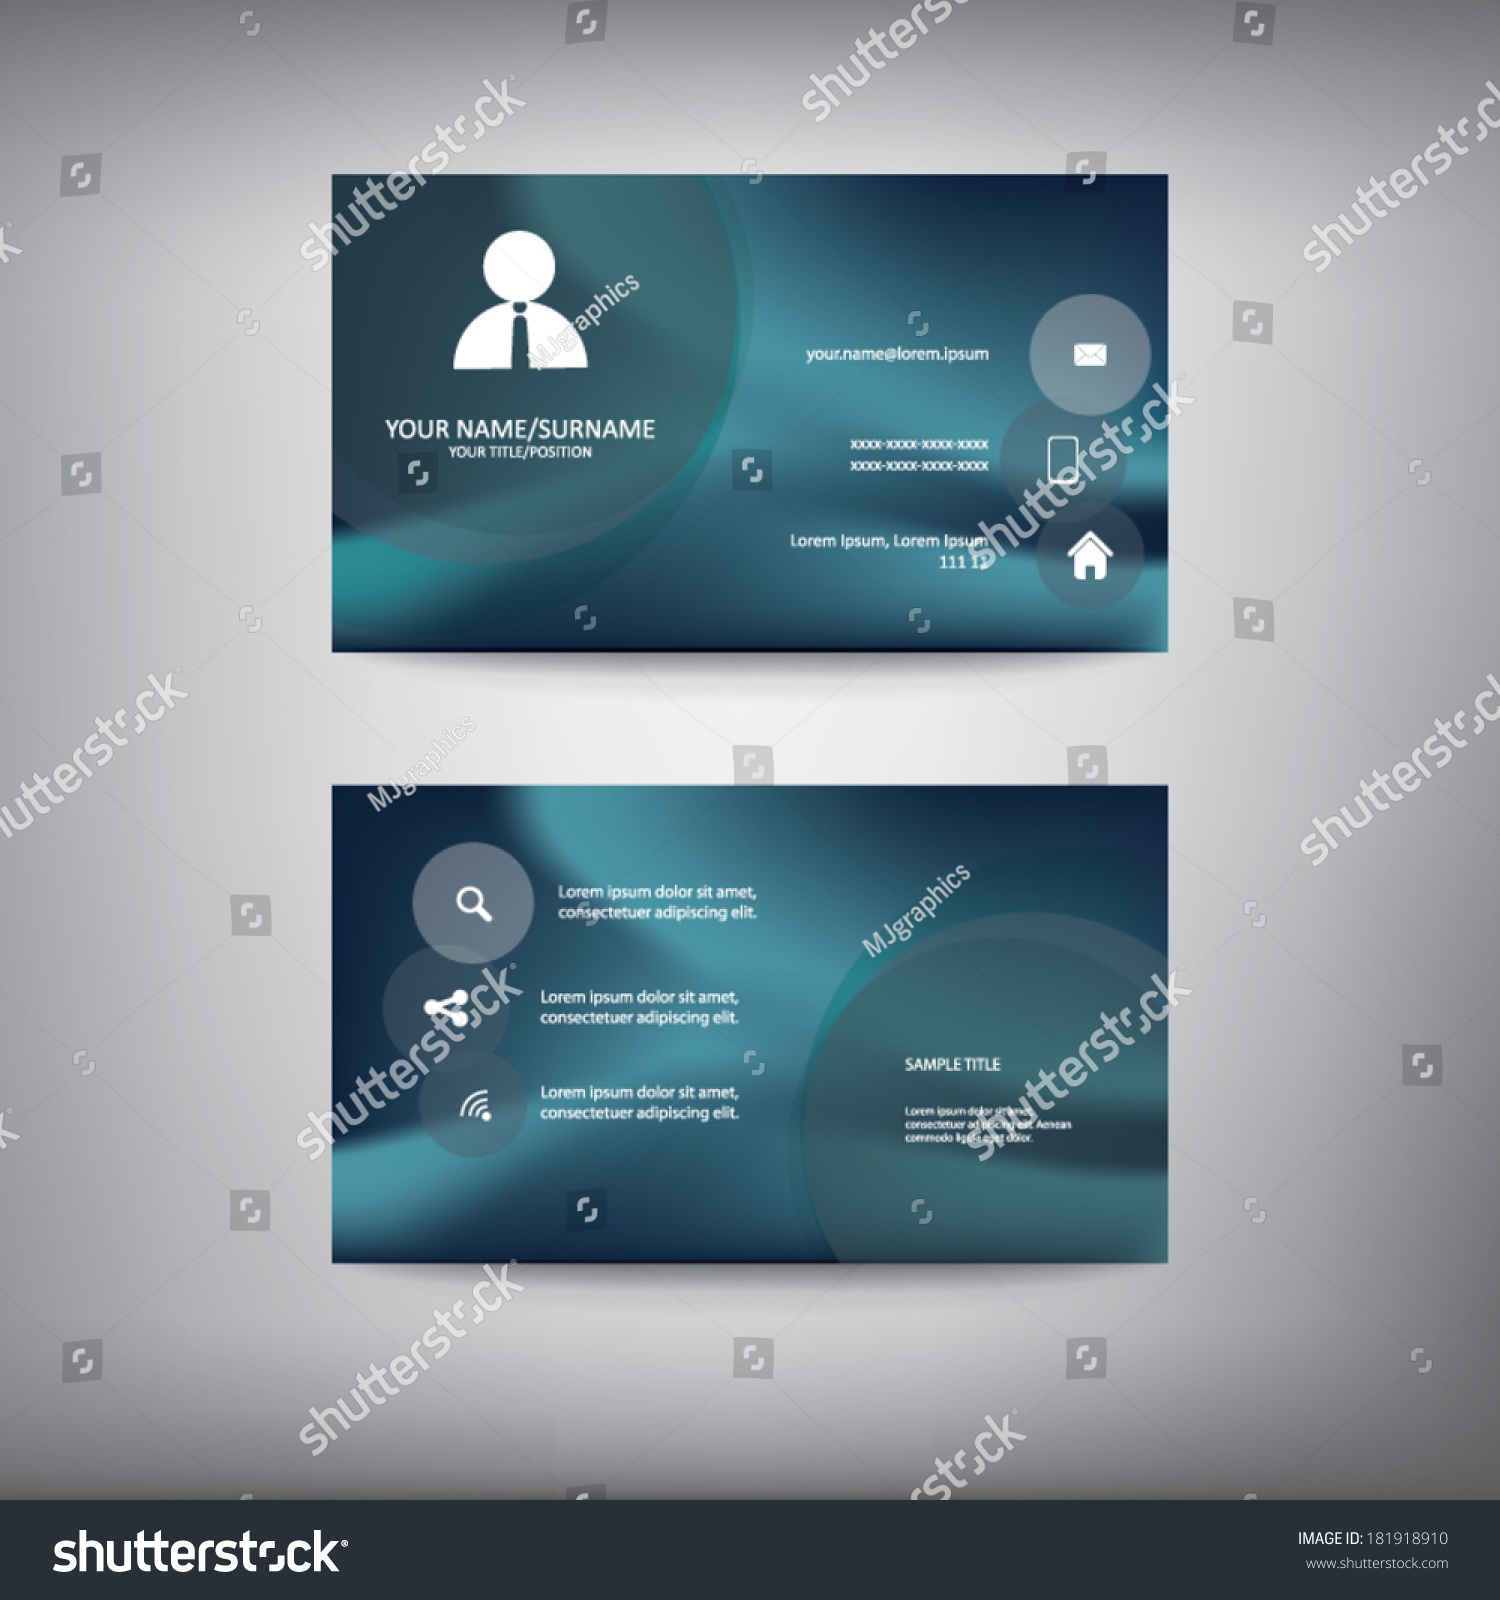 Business card template icons information space stock vector business card template with icons for information and space for text eps10 vector illustration colourmoves